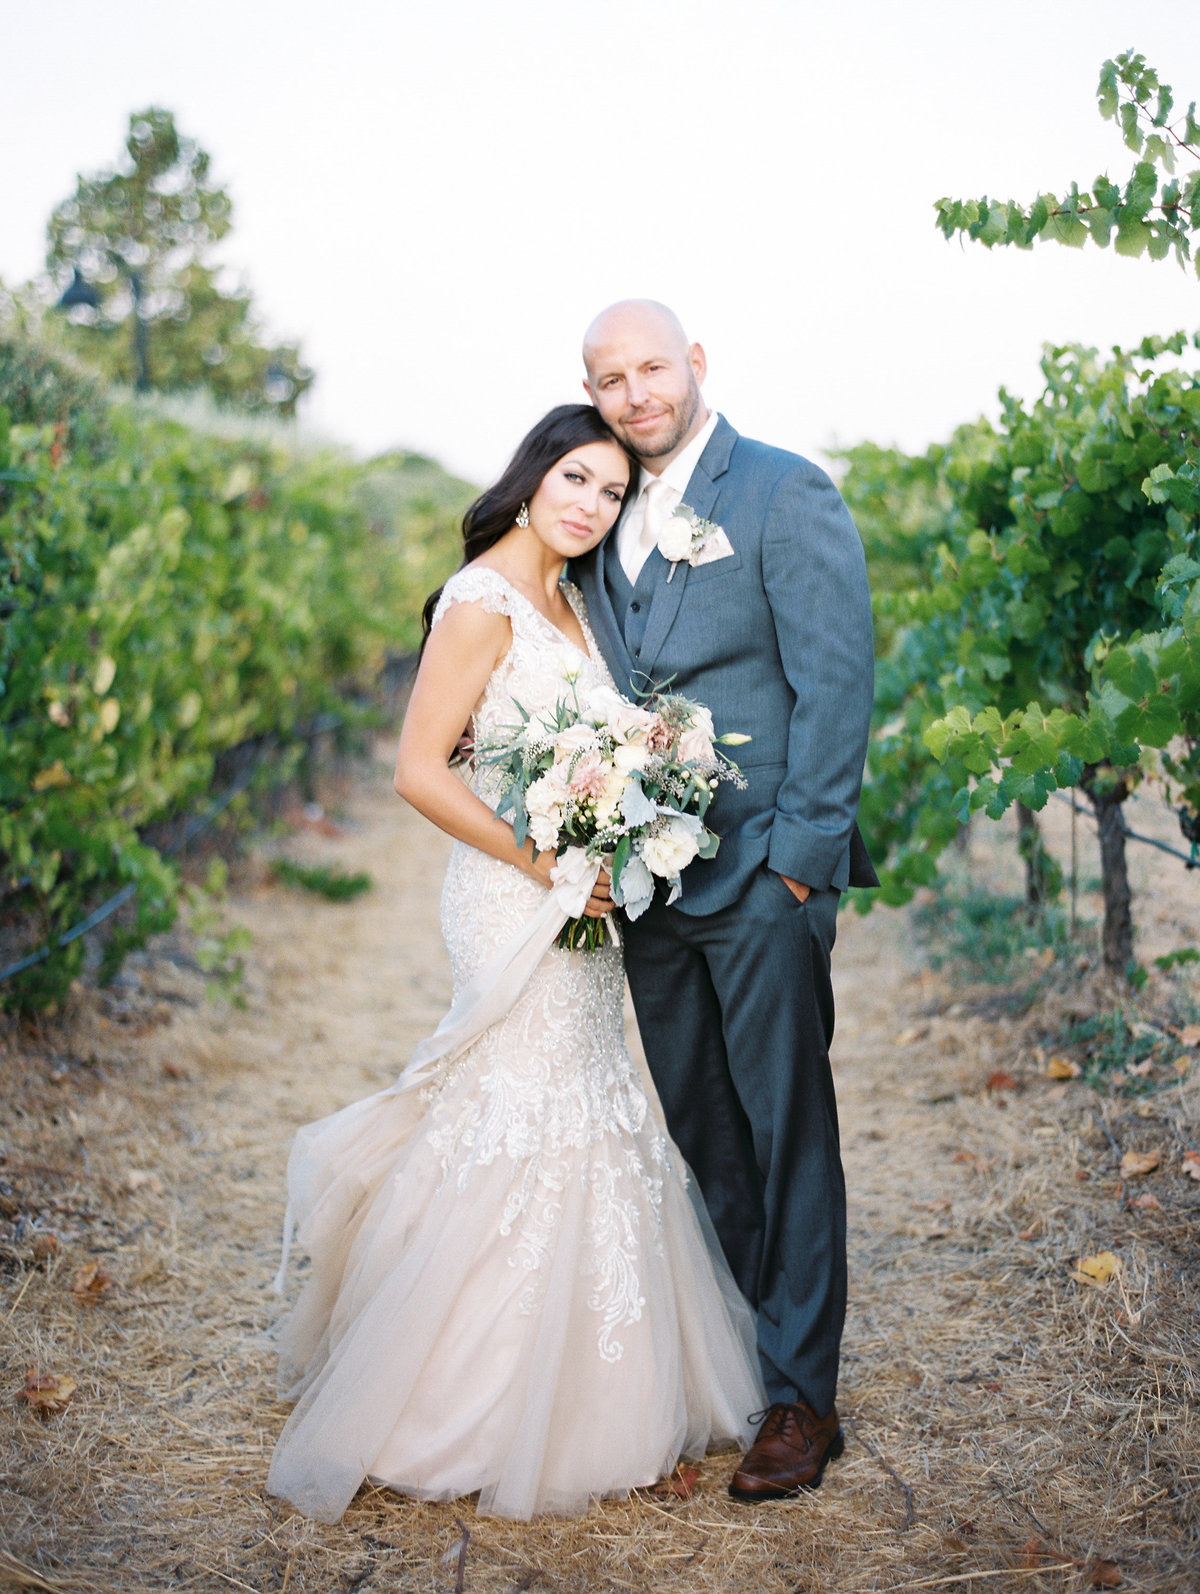 Natalie Bray Studios, Natalie Bray Photography, Southern California Wedding Photographer, Fine Art wedding, Destination Wedding Photographer, Sonoma Wedding Photographer-37